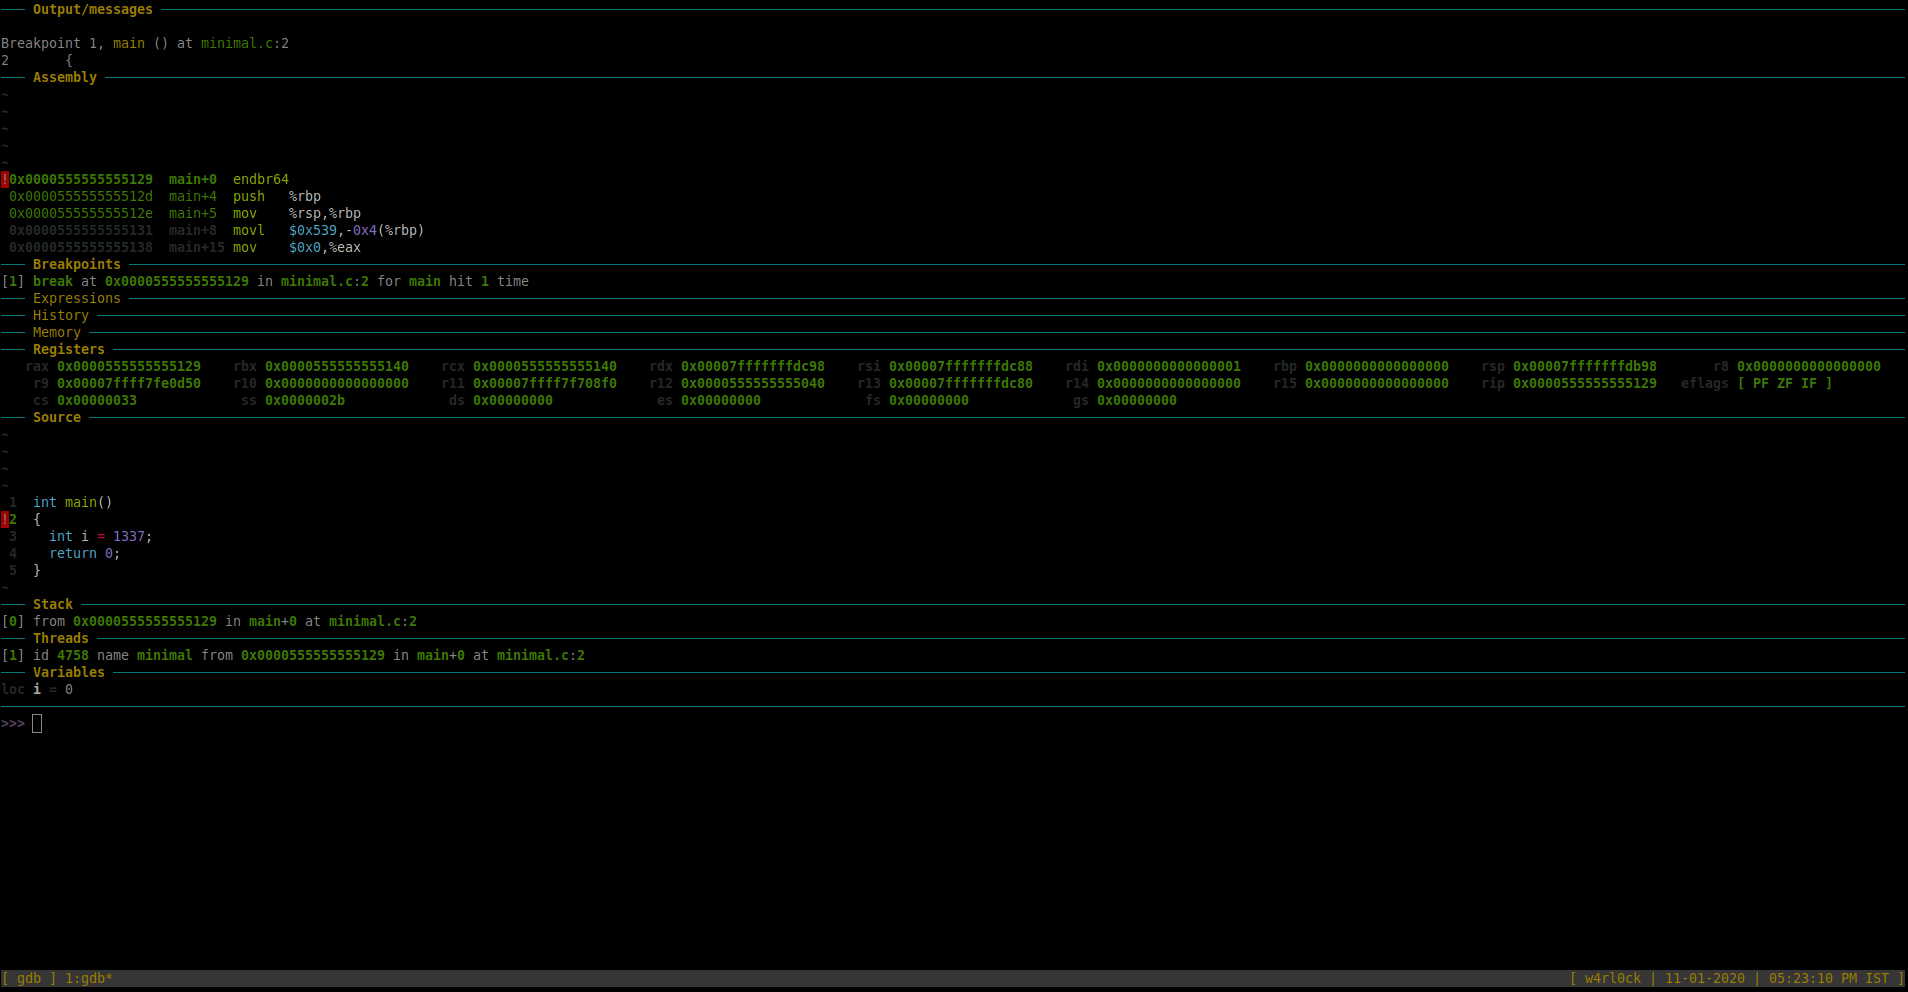 GDB Dashboard screenshot